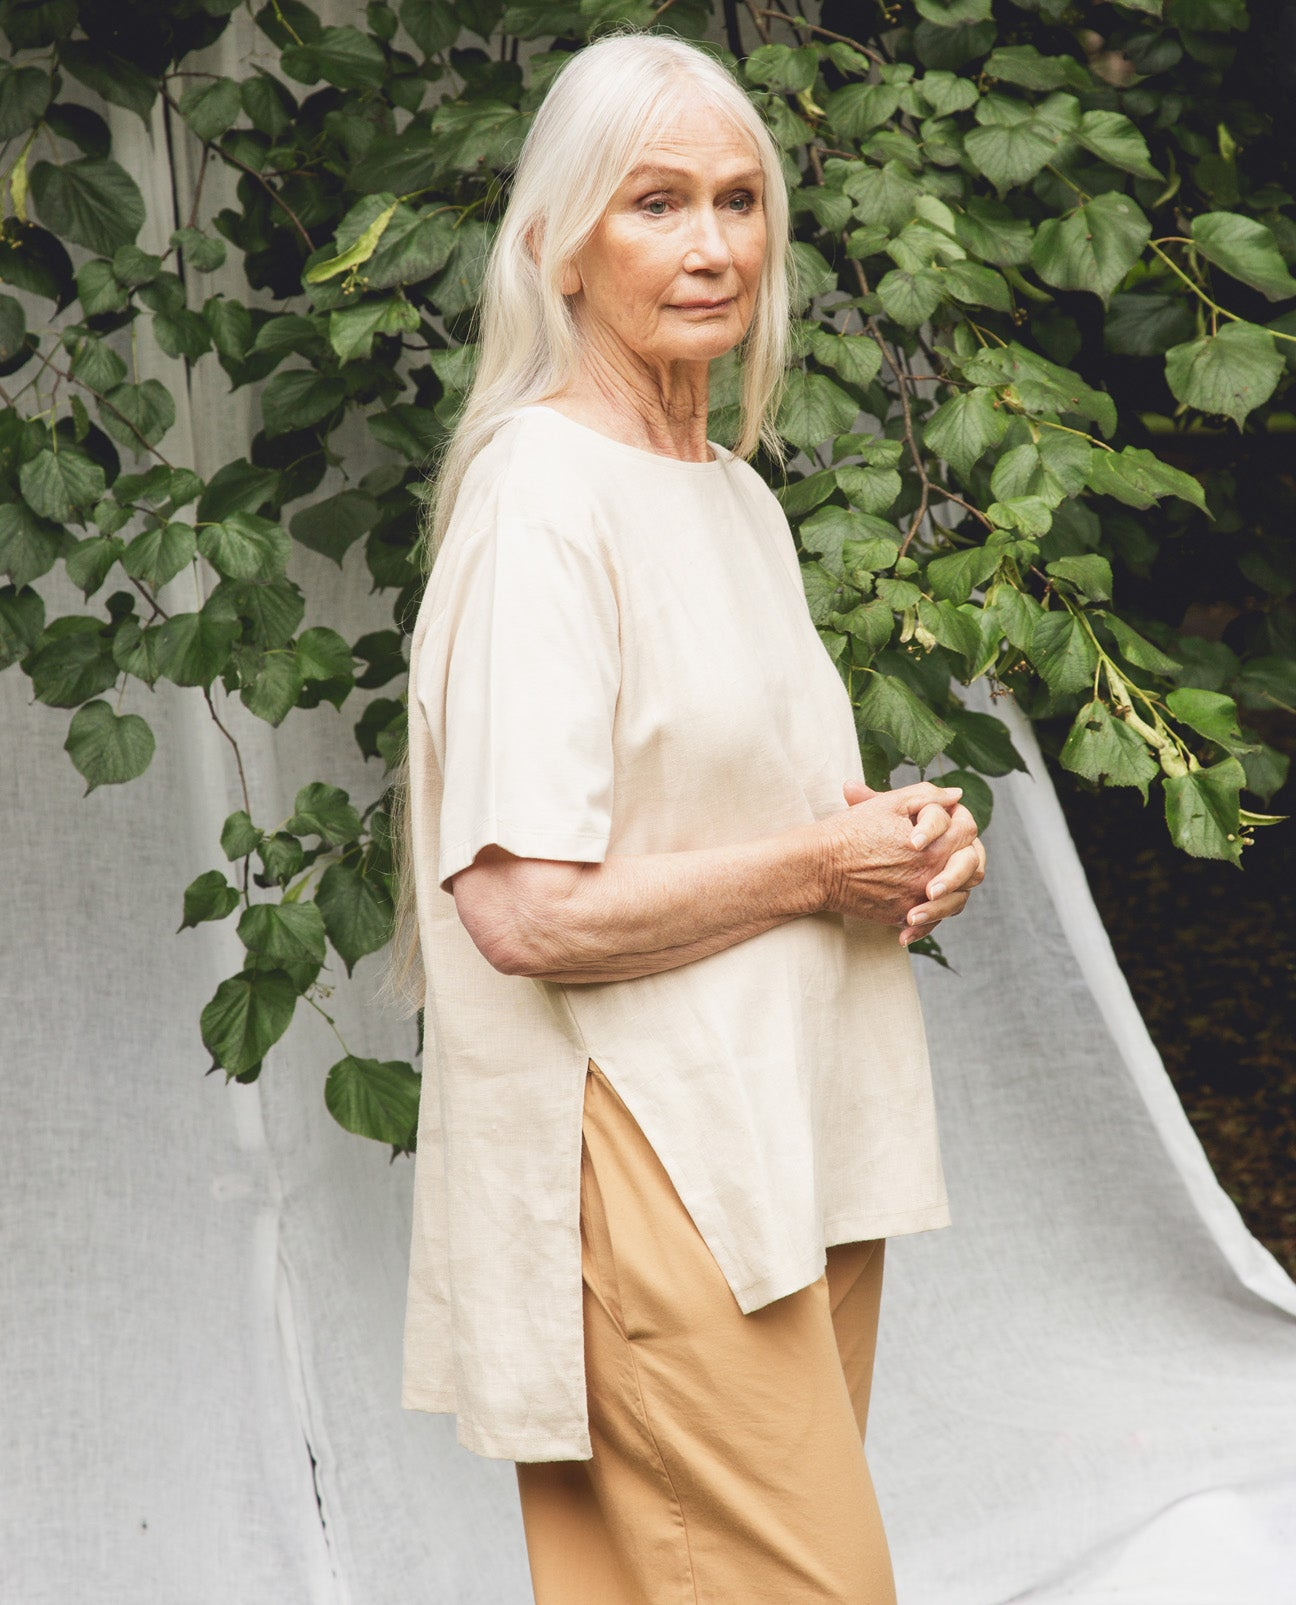 Hayley-May Organic Cotton & Linen Top In Cream.